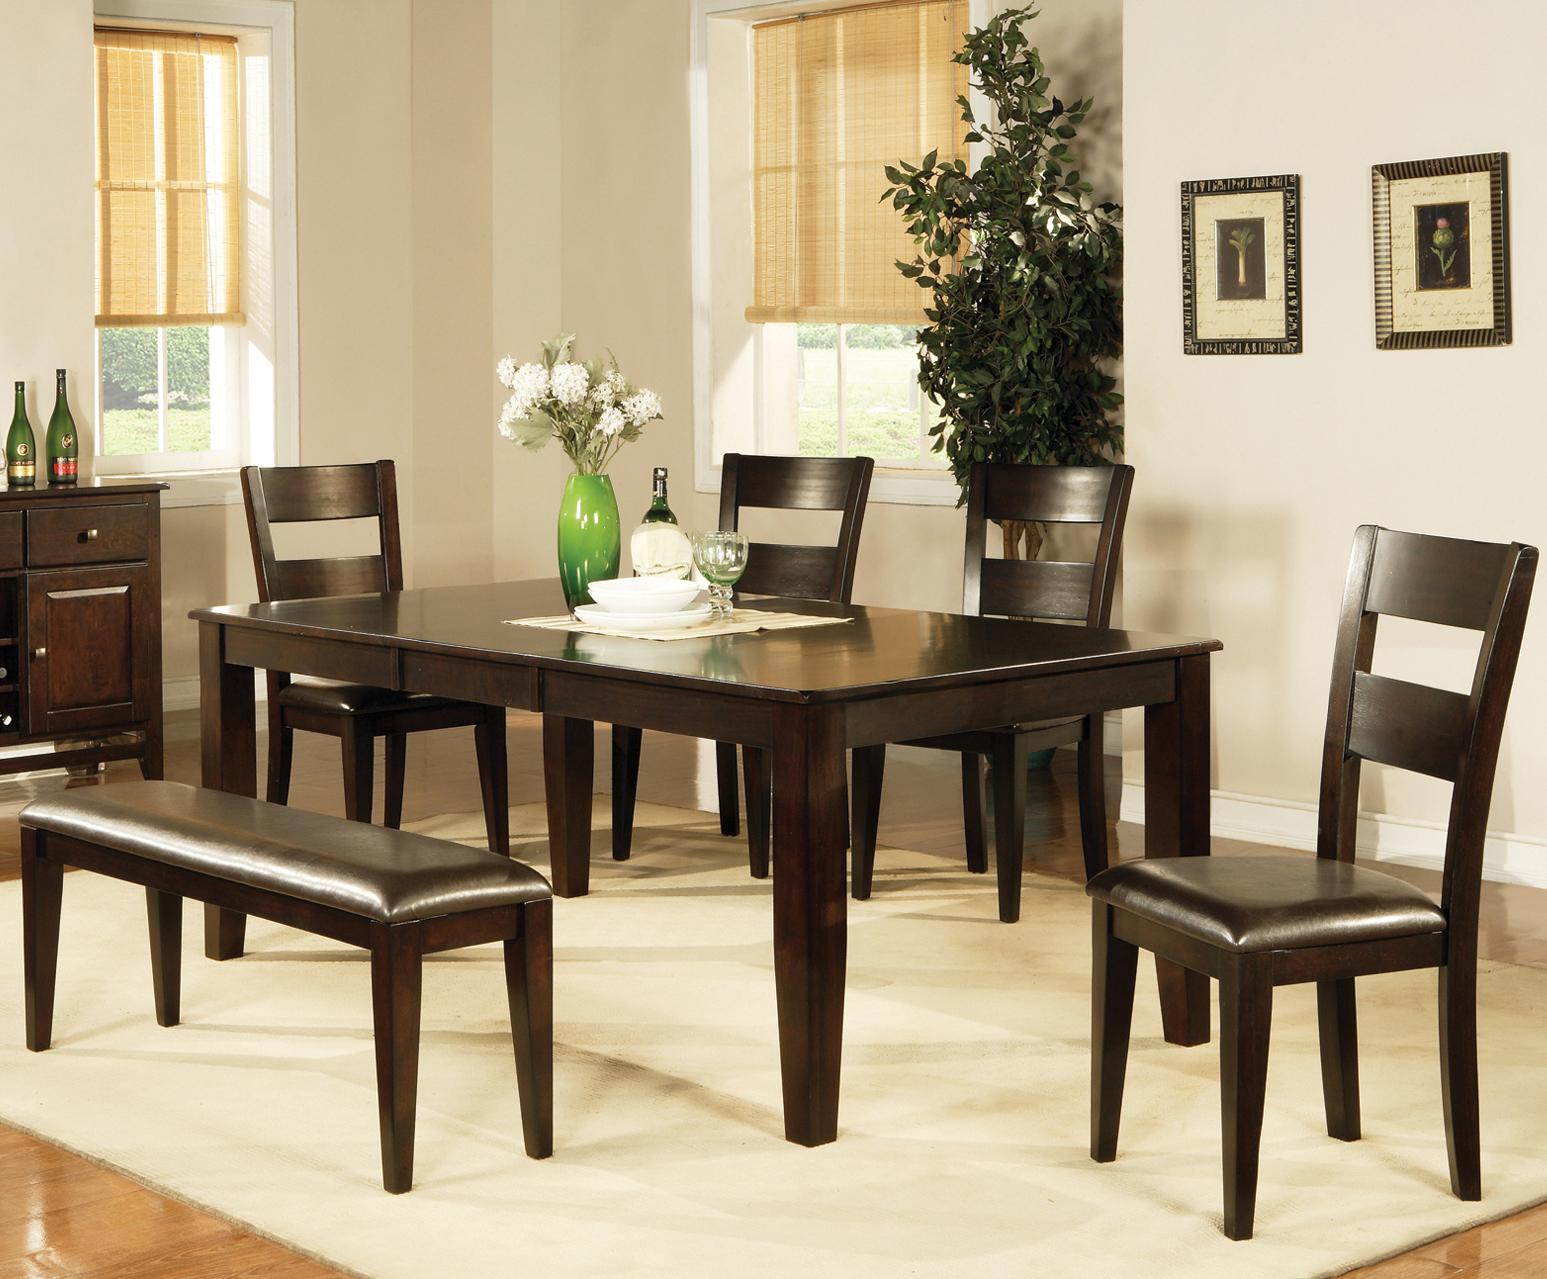 steve silver dining chairs egg pod chair victoria 7 piece set with side and bench